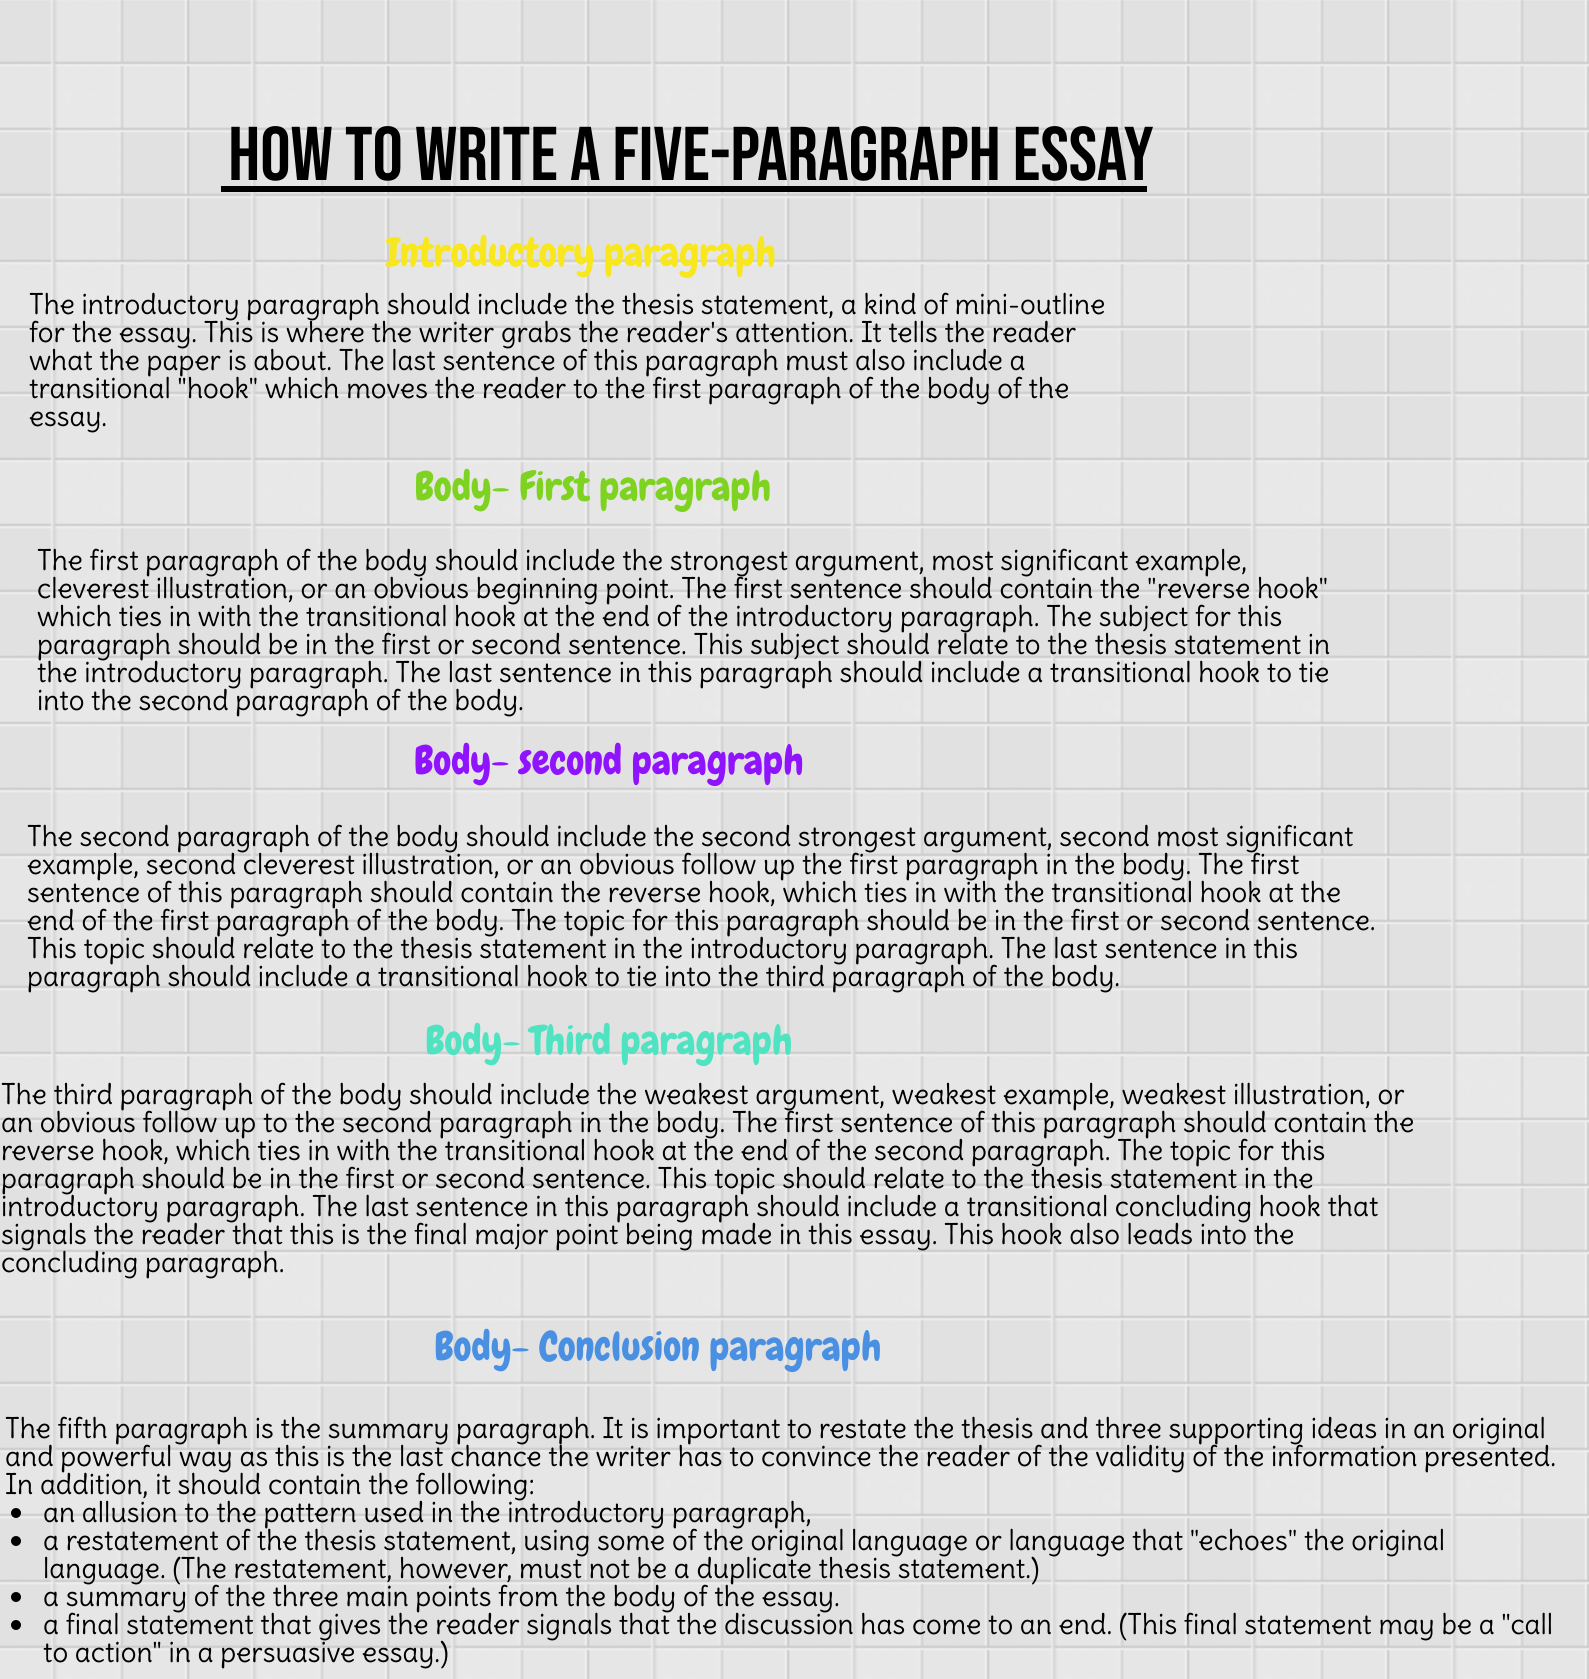 5 Paragraph Essay Outline Education Introductory Writing A Persuasive Pulmonary Critical Care Personal Statement